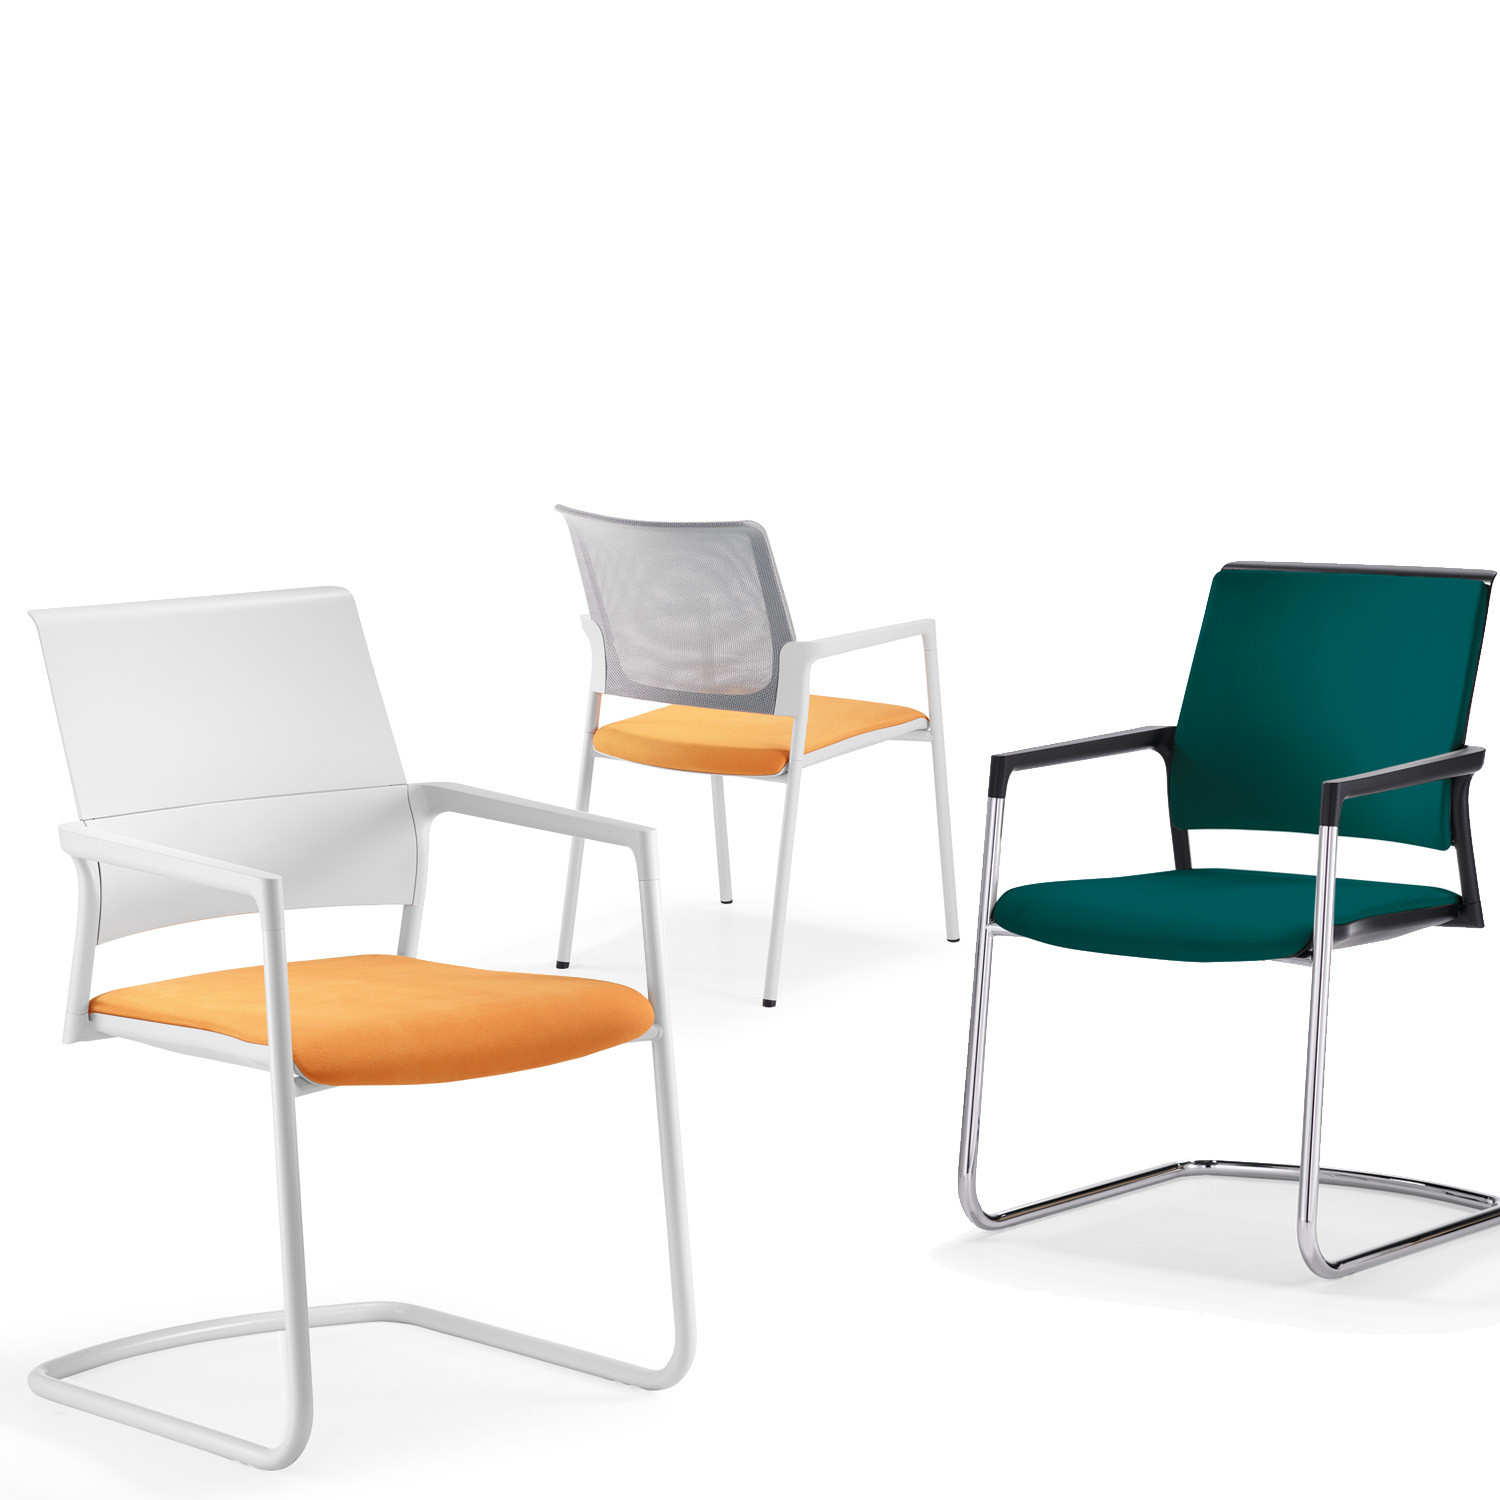 Mera Cantilever Chairs